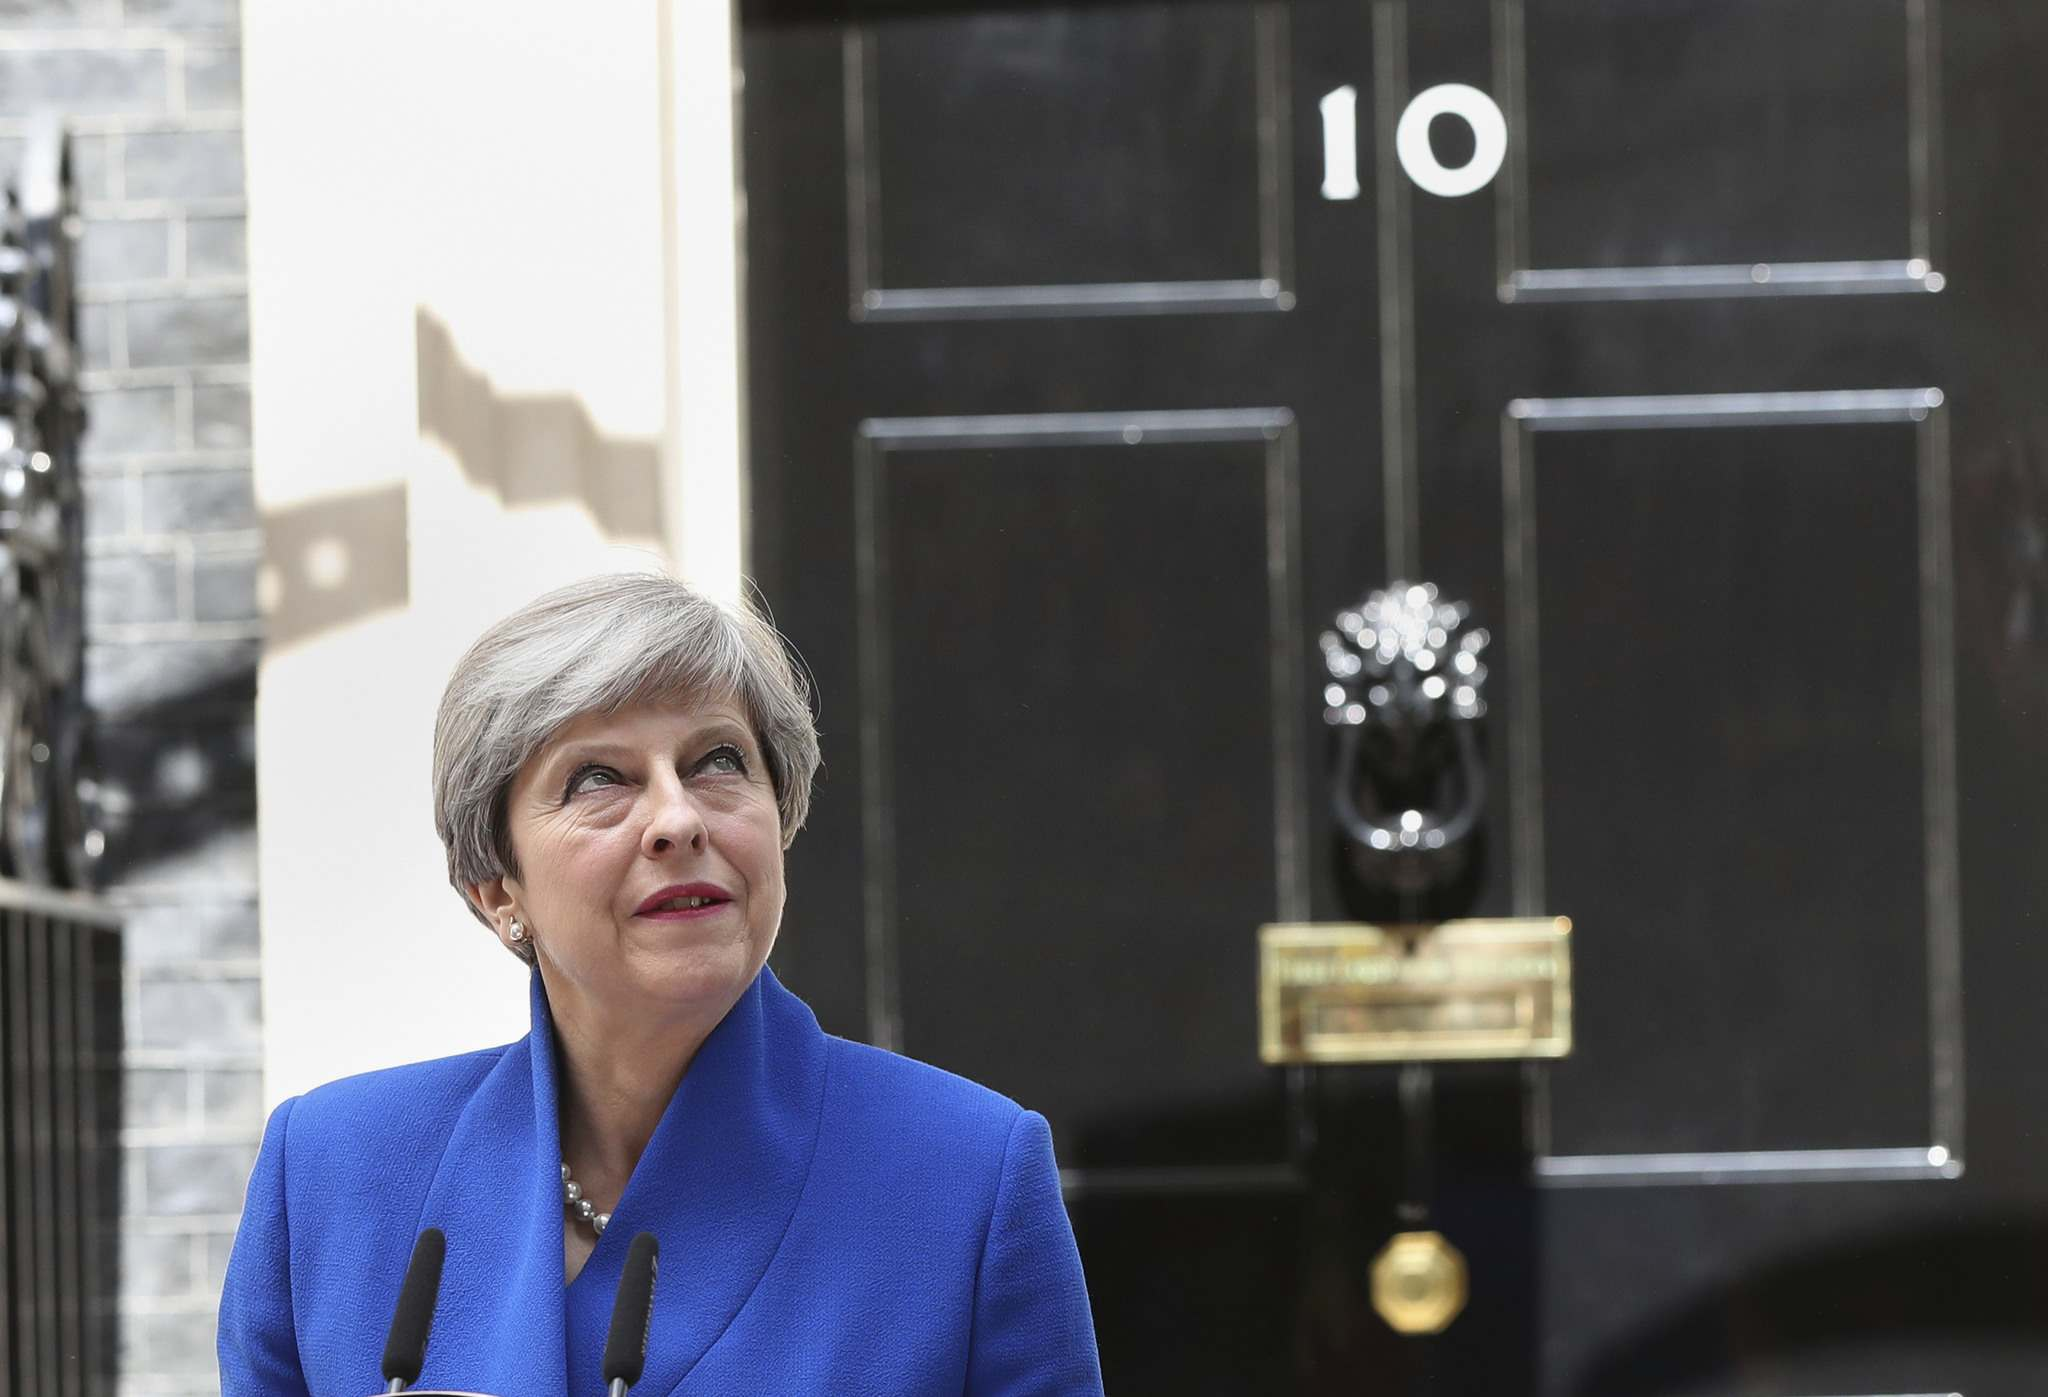 JONATHAN BRADY / THE ASSOCIATED PRESS</p><p>Prime Minister Theresa May's gamble in calling an early election backfired spectacularly as her Conservative Party lost its majority in Parliament, throwing British politics into chaos.</p>